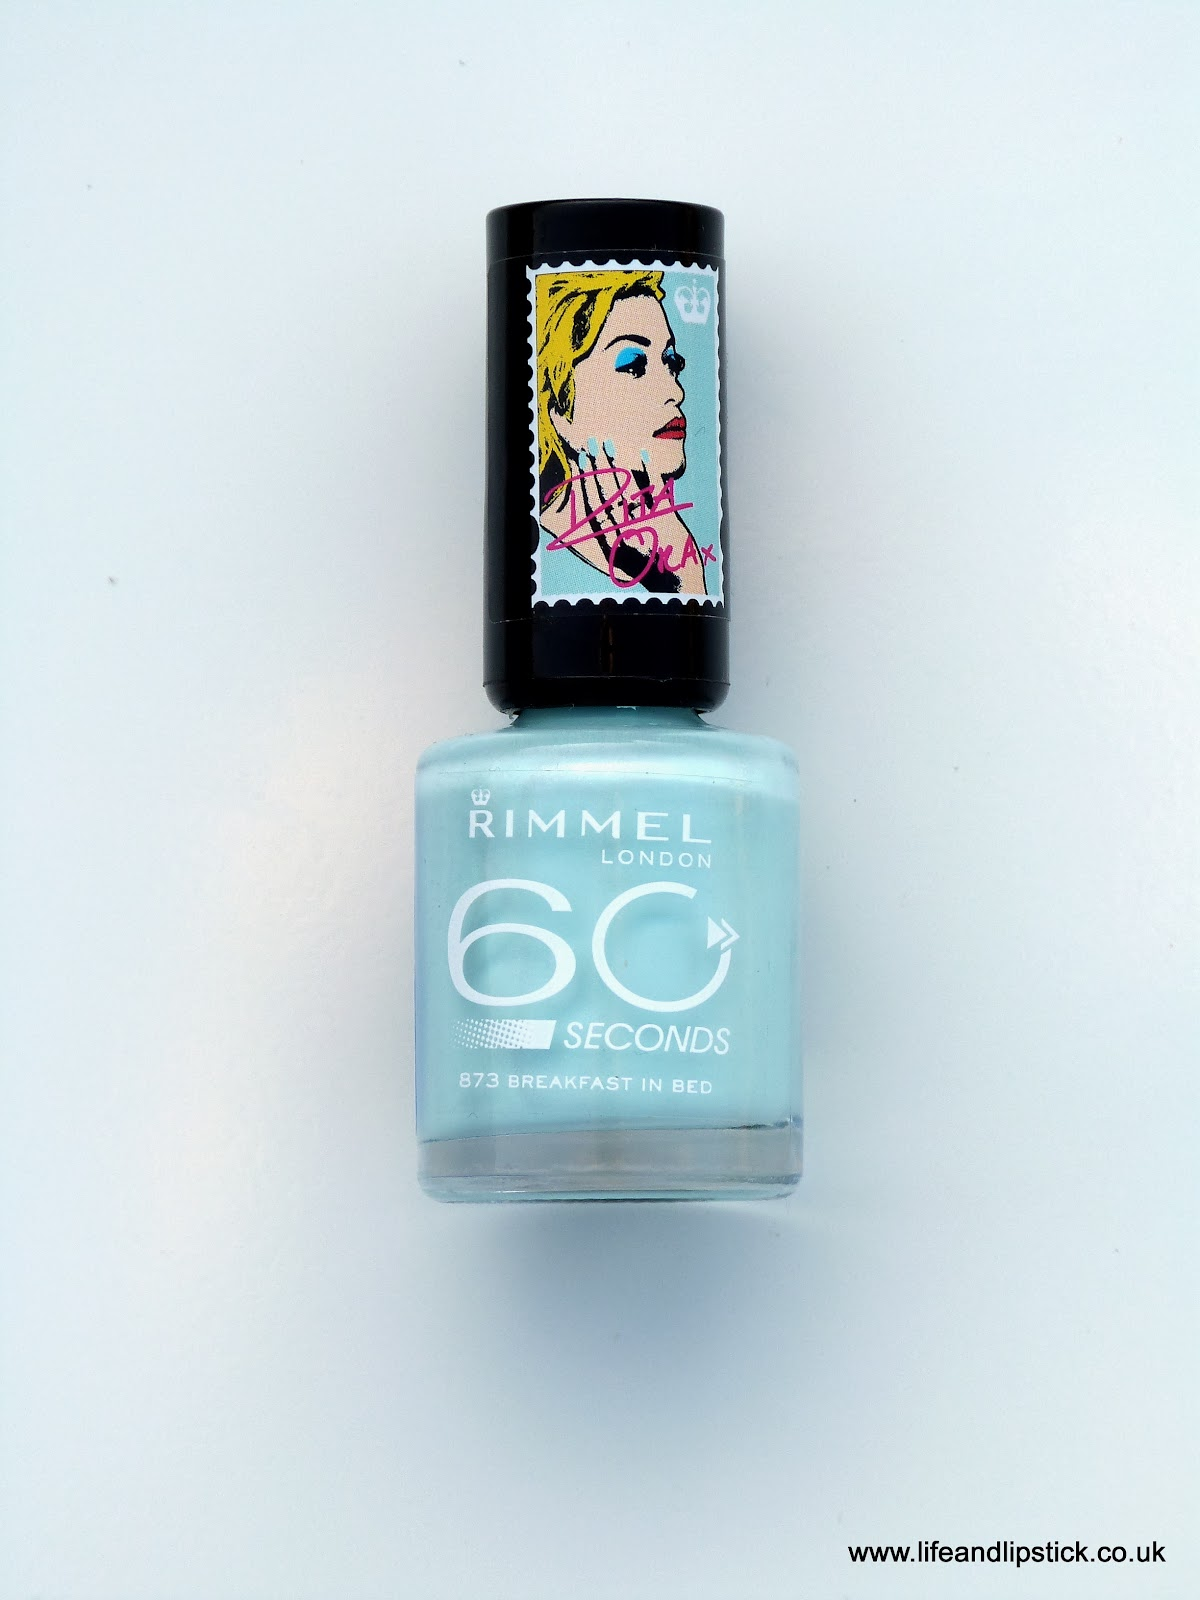 Rimmel London 60 Seconds Nail Polish Breakfast in Bed